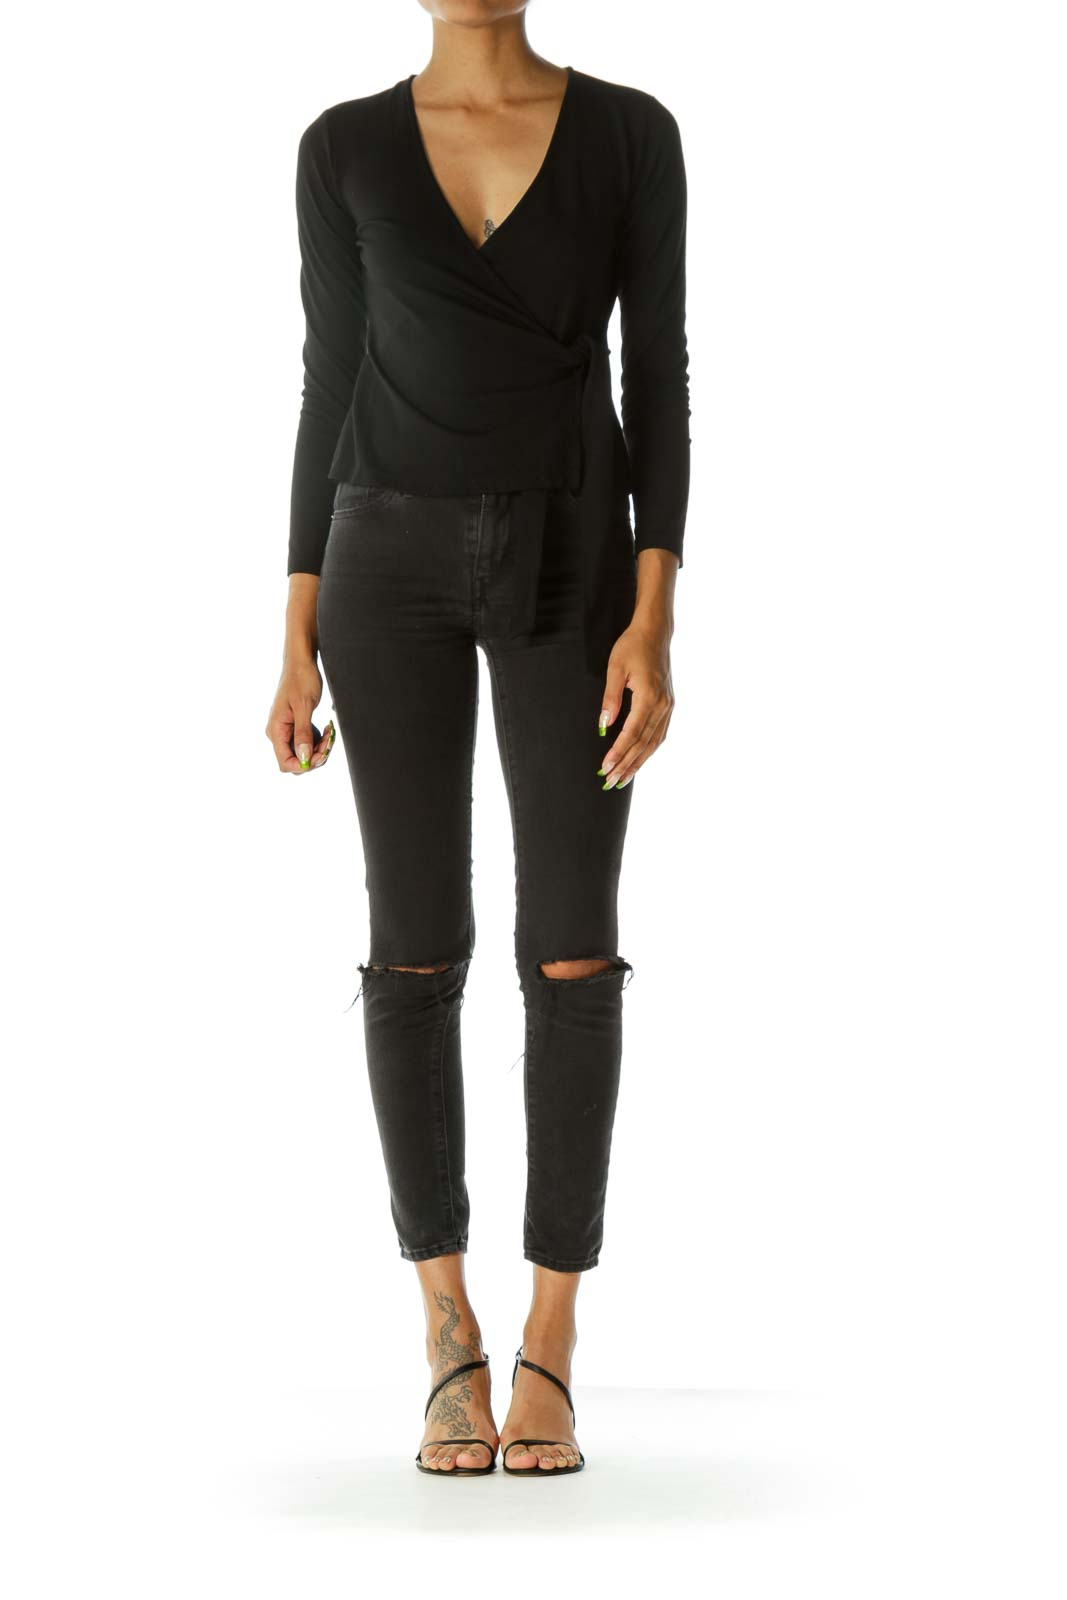 Black V-Neck Wrap Long Sleeve Stretch Top